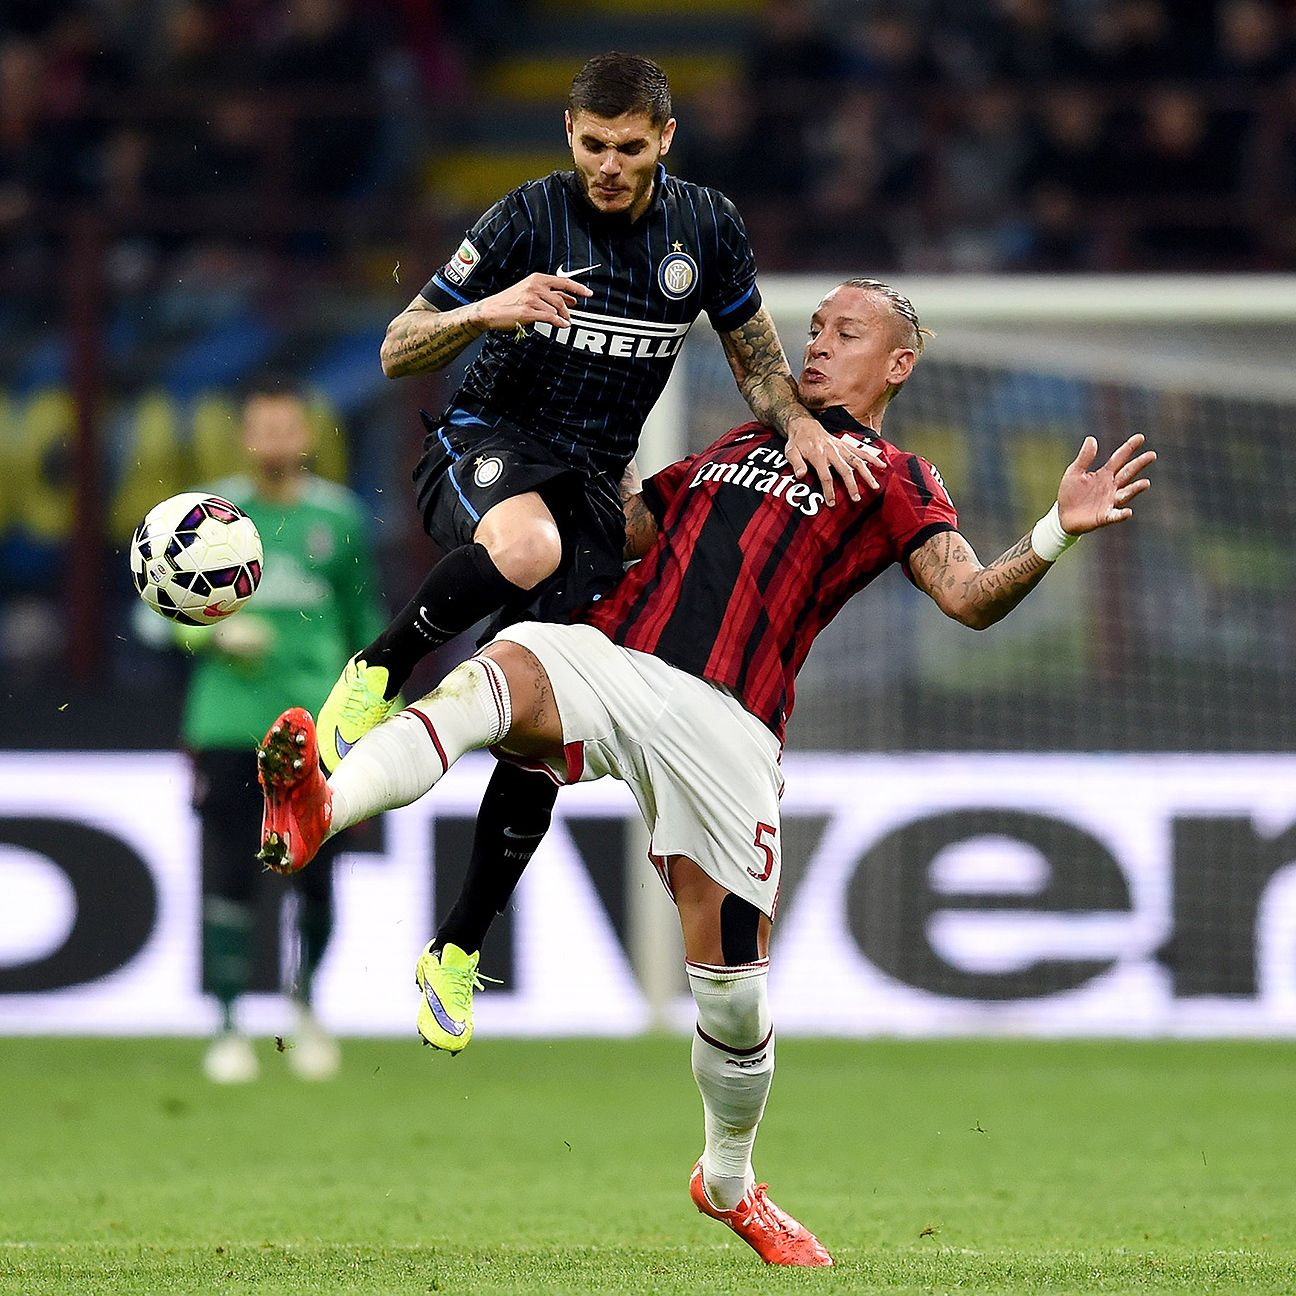 Between the two teams, Mauro Icardi and Inter had the bulk of the scoring chances against city rivals Milan.